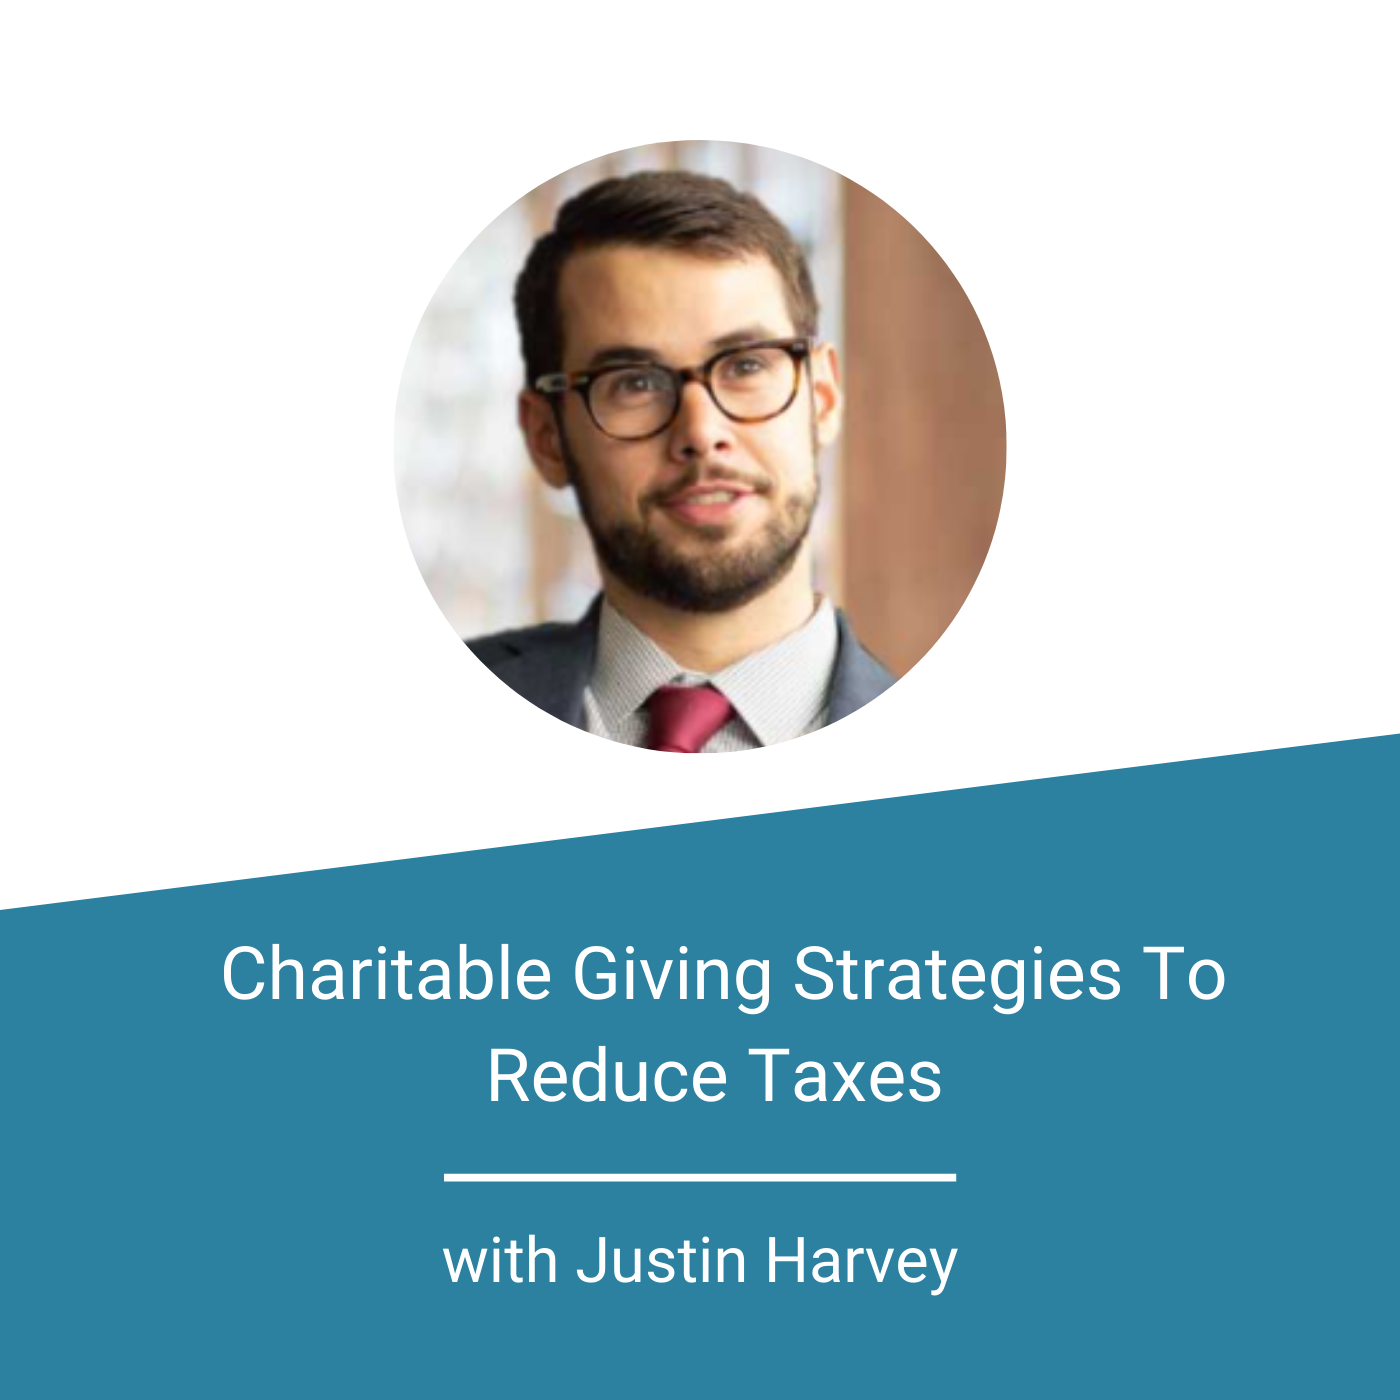 FEATURED IMAGE - Charitable Giving Strategies To Reduce Taxes with Justin Harvey